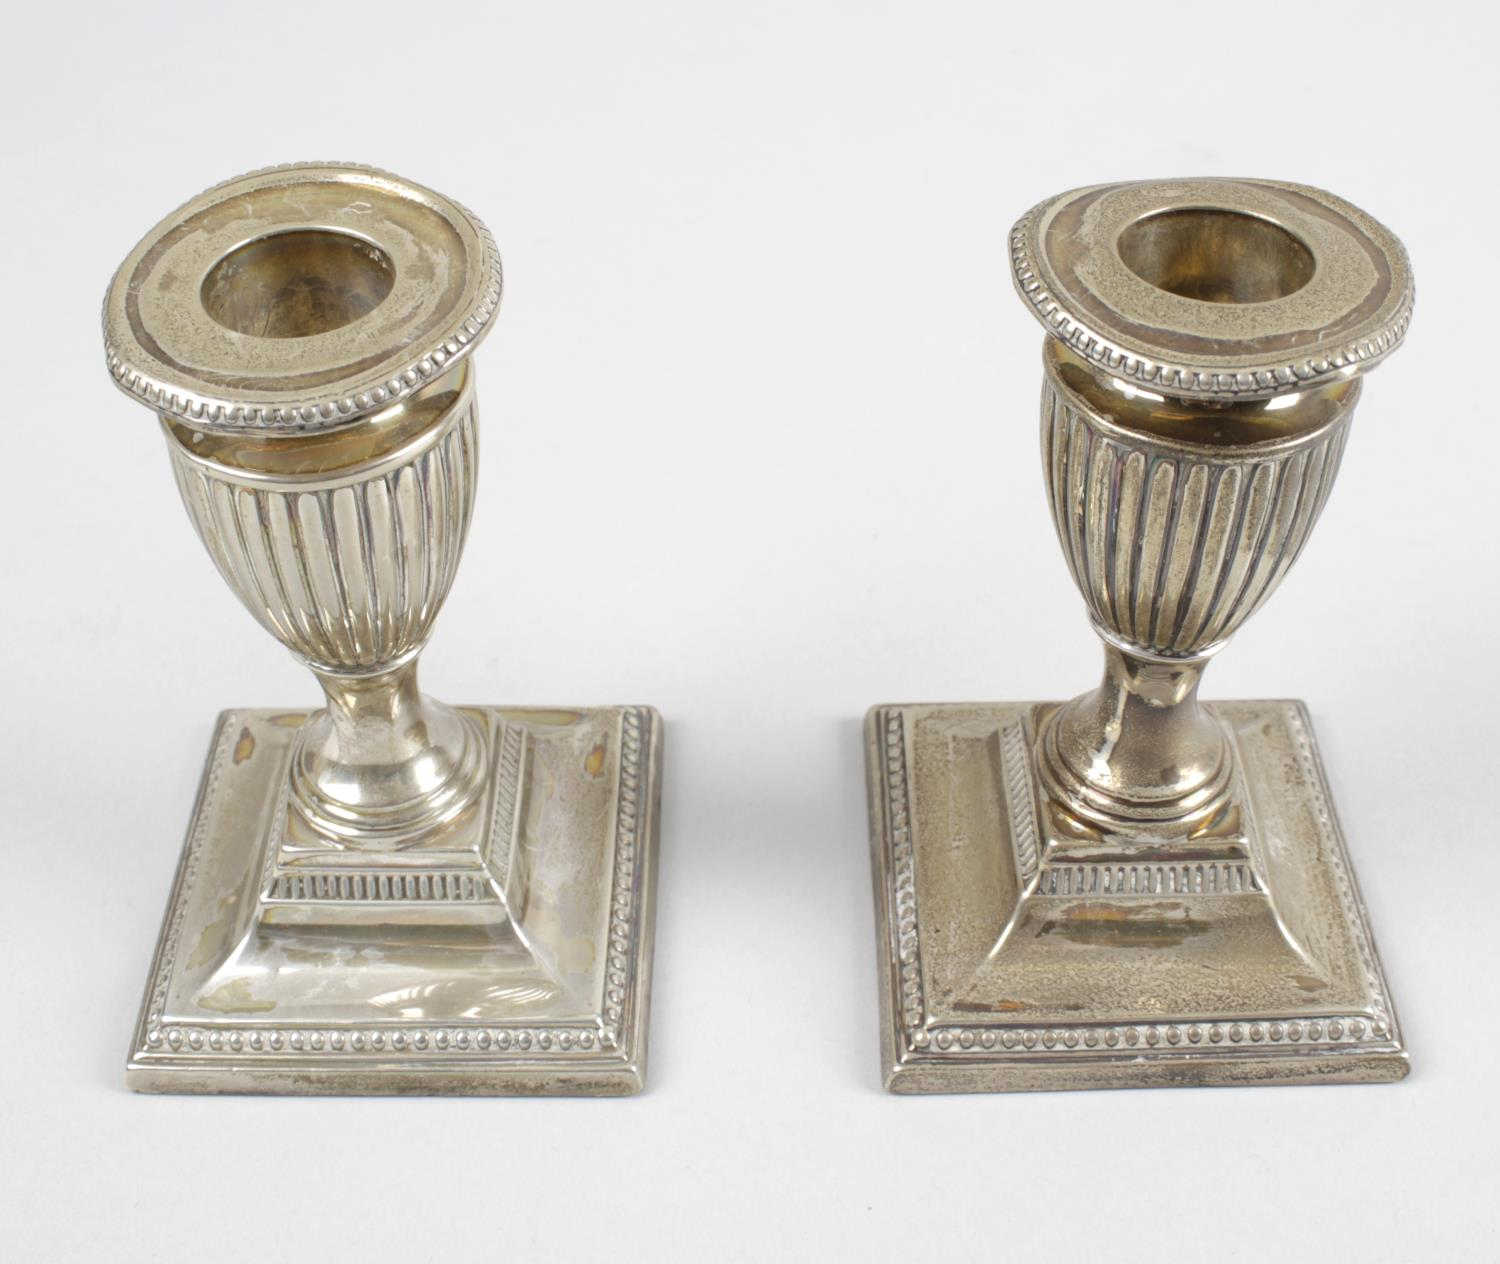 Lot 41 - A pair of Edwardian silver mounted dwarf candlesticks,